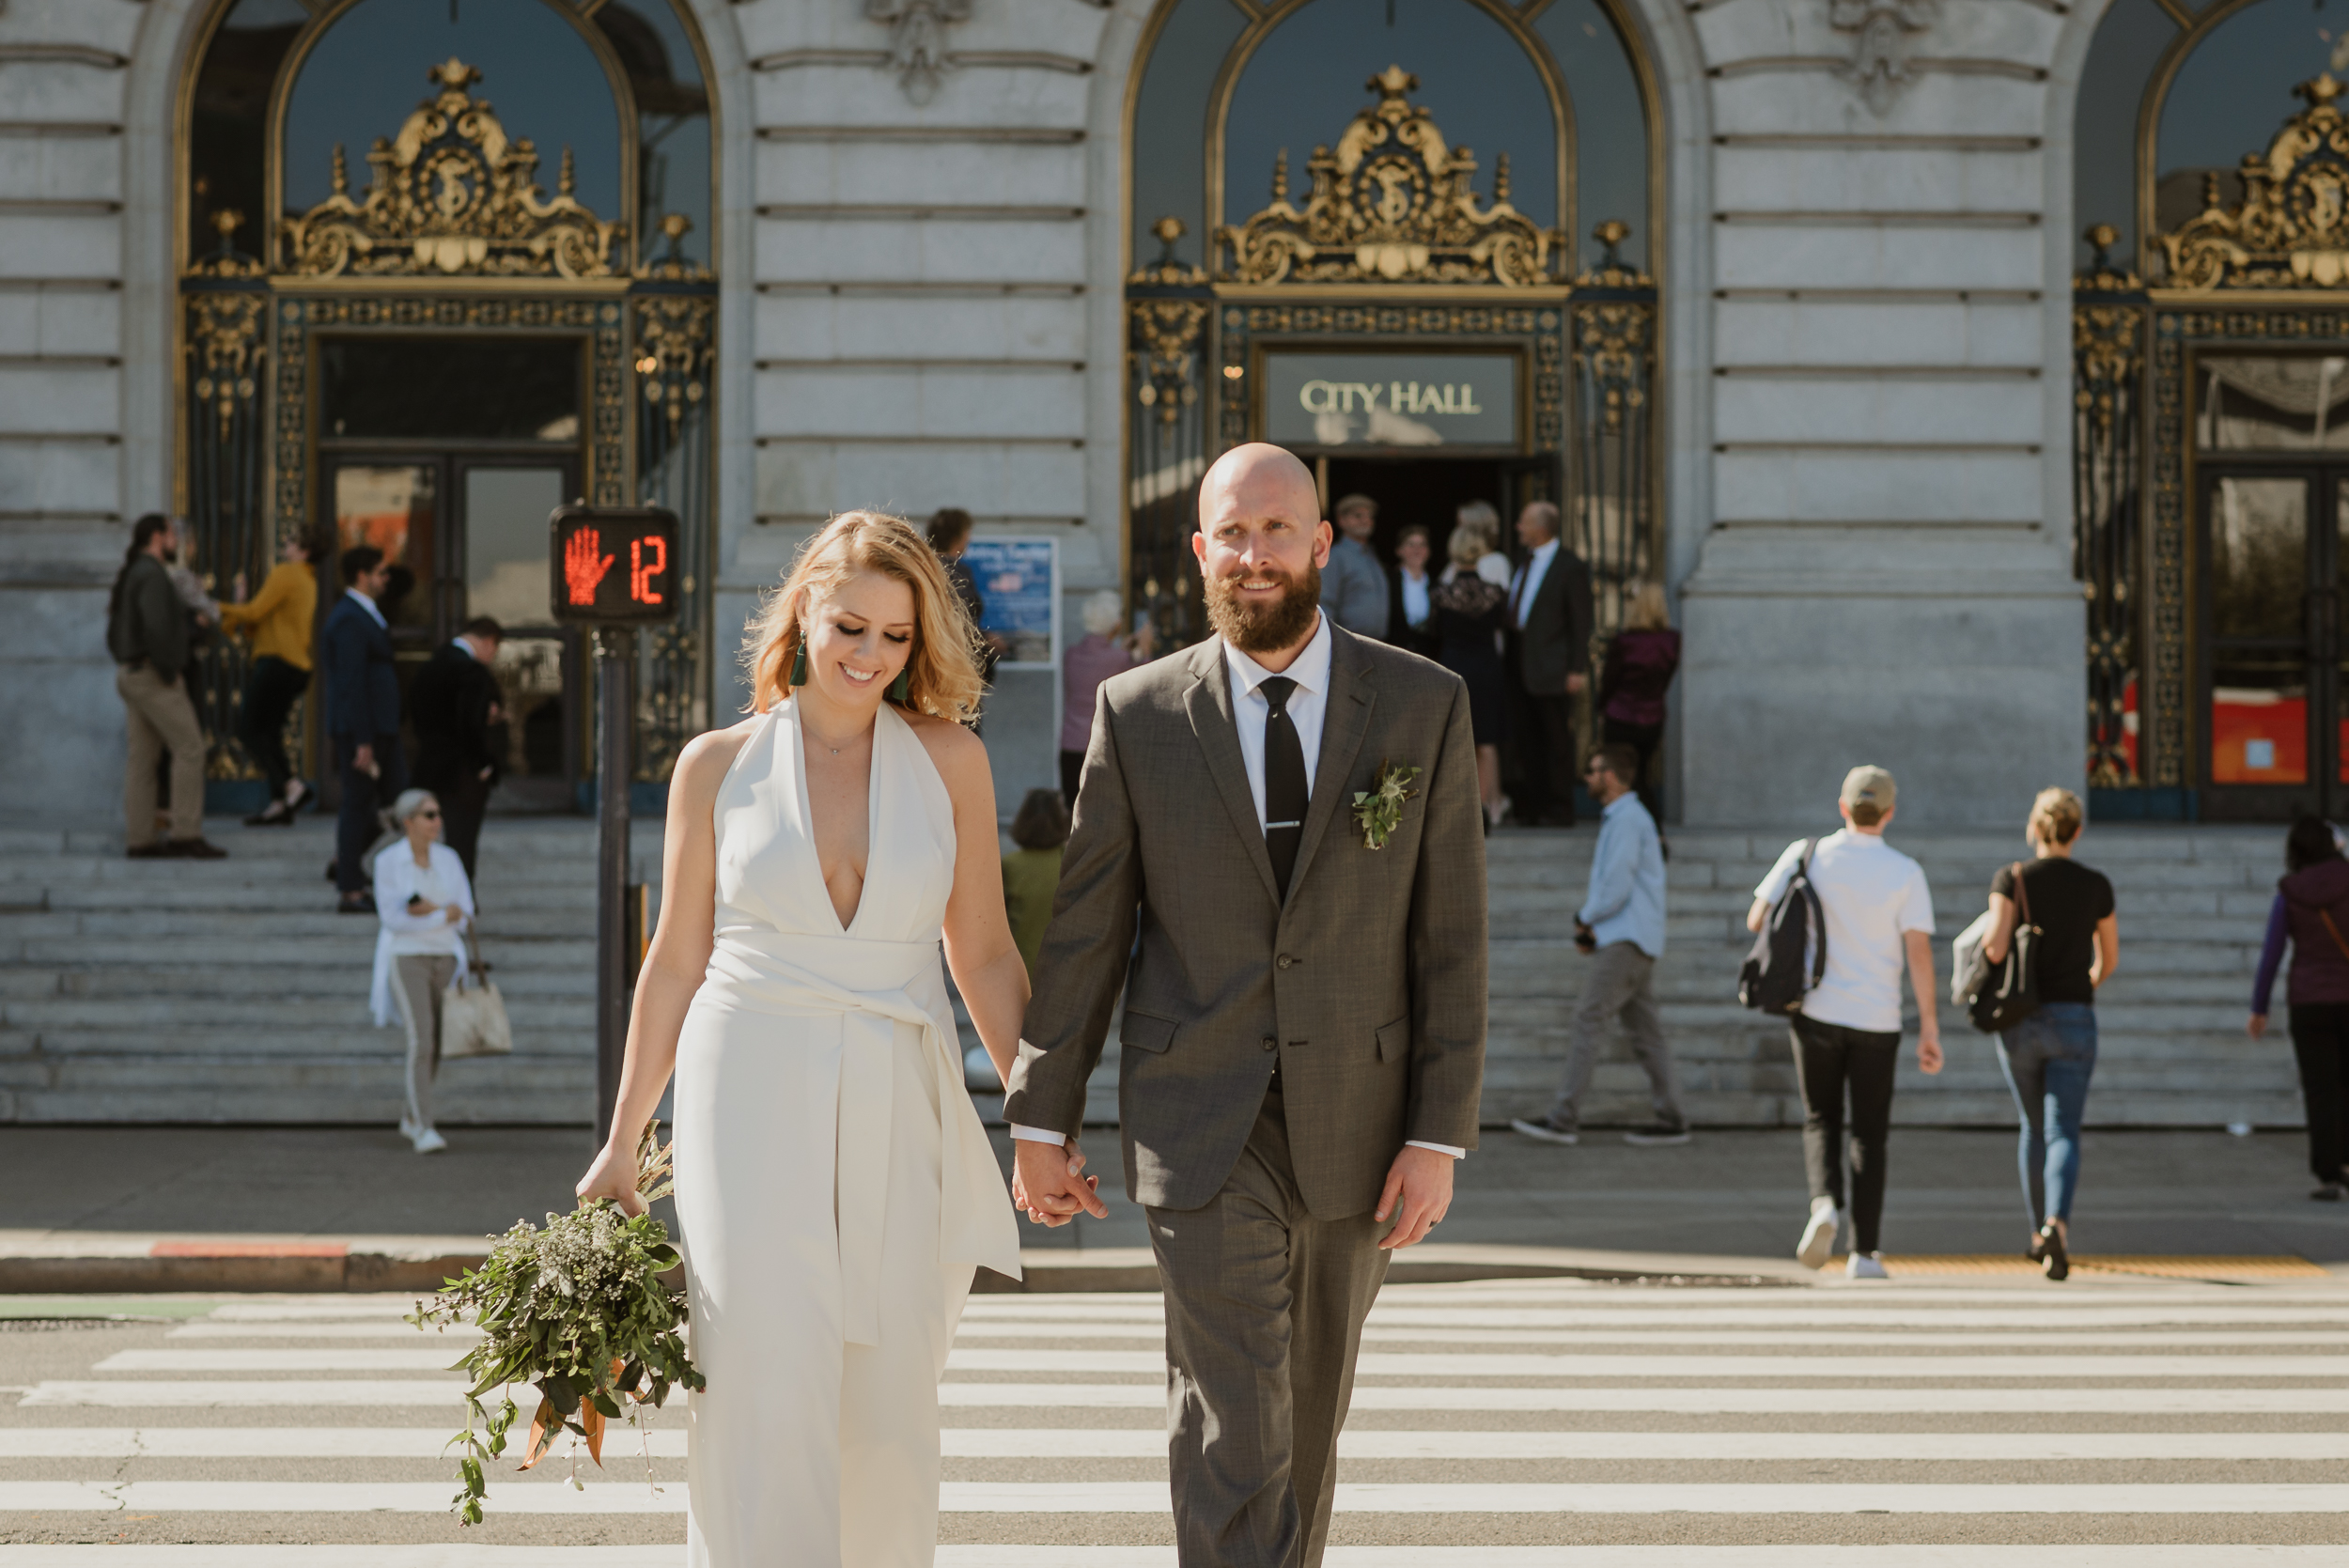 destination-elopement-at-san-francisco-city-hall-vivianchen-276.jpg